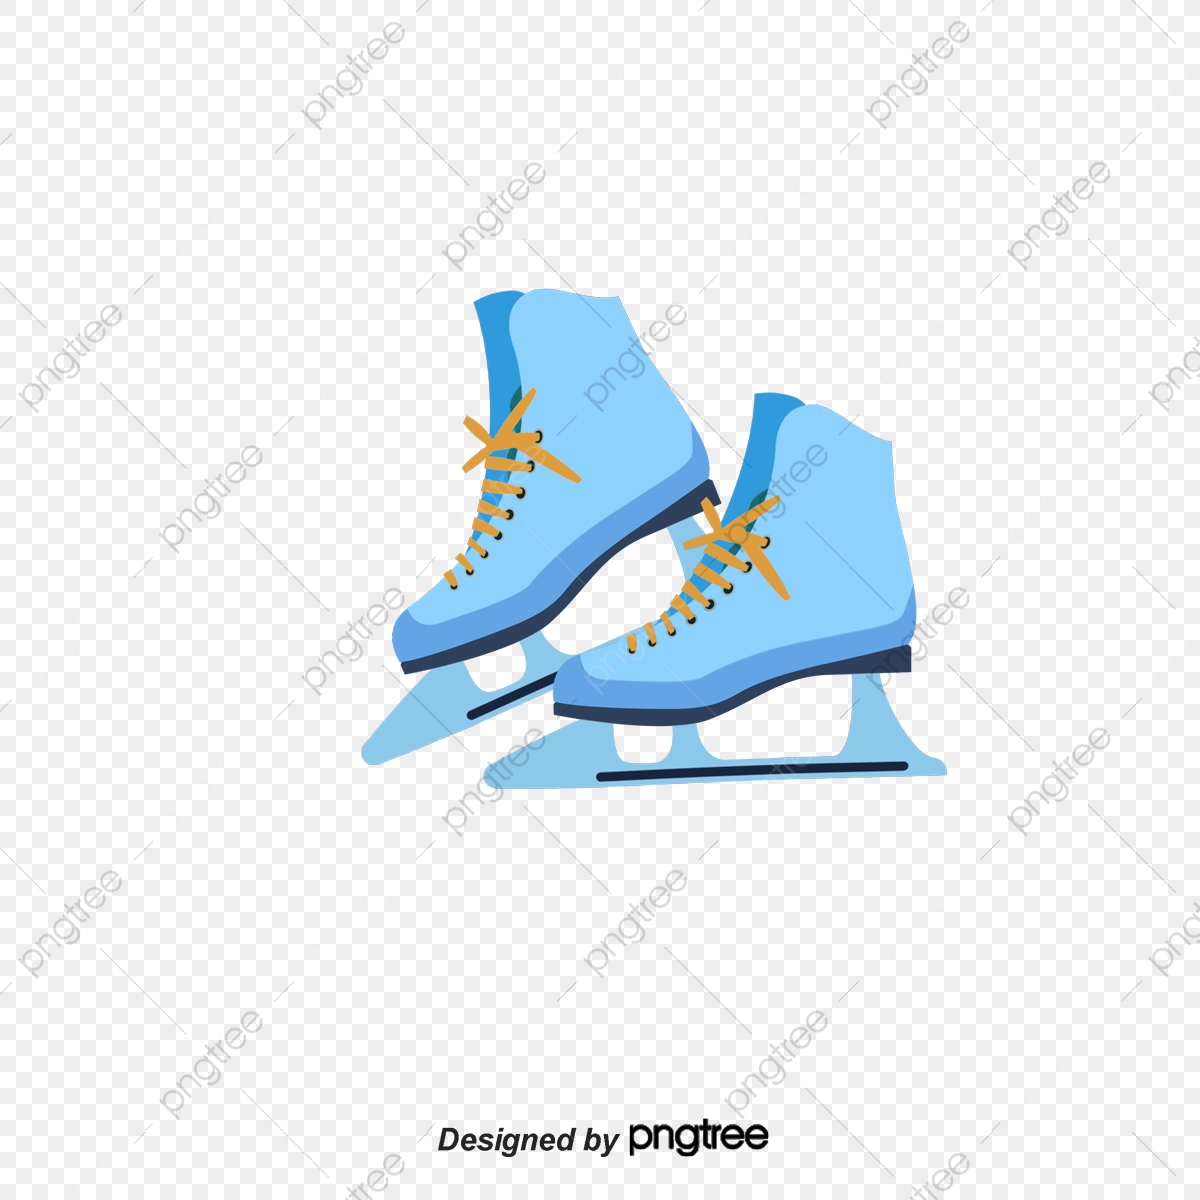 hight resolution of commercial use resource upgrade to premium plan and get license authorization upgradenow roller skates